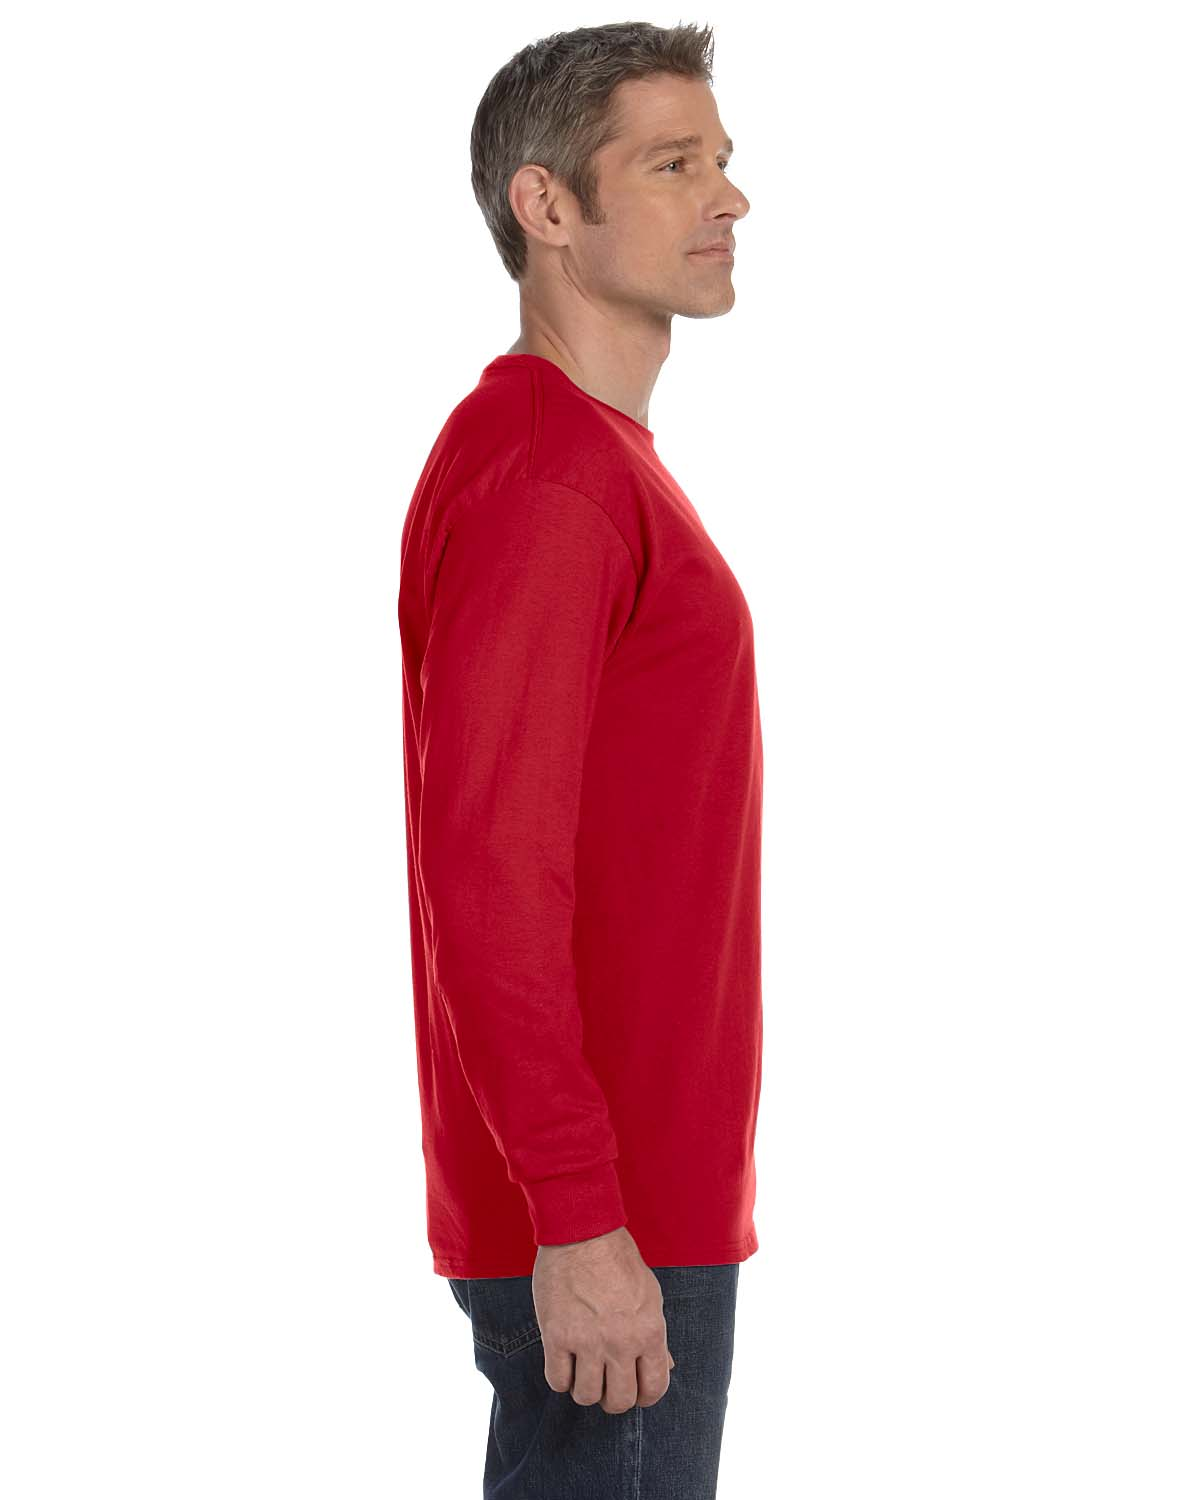 Gildan-Mens-T-Shirt-Long-Sleeve-Heavy-Cotton-5-3-oz-S-XL-R-G540-5400 thumbnail 42